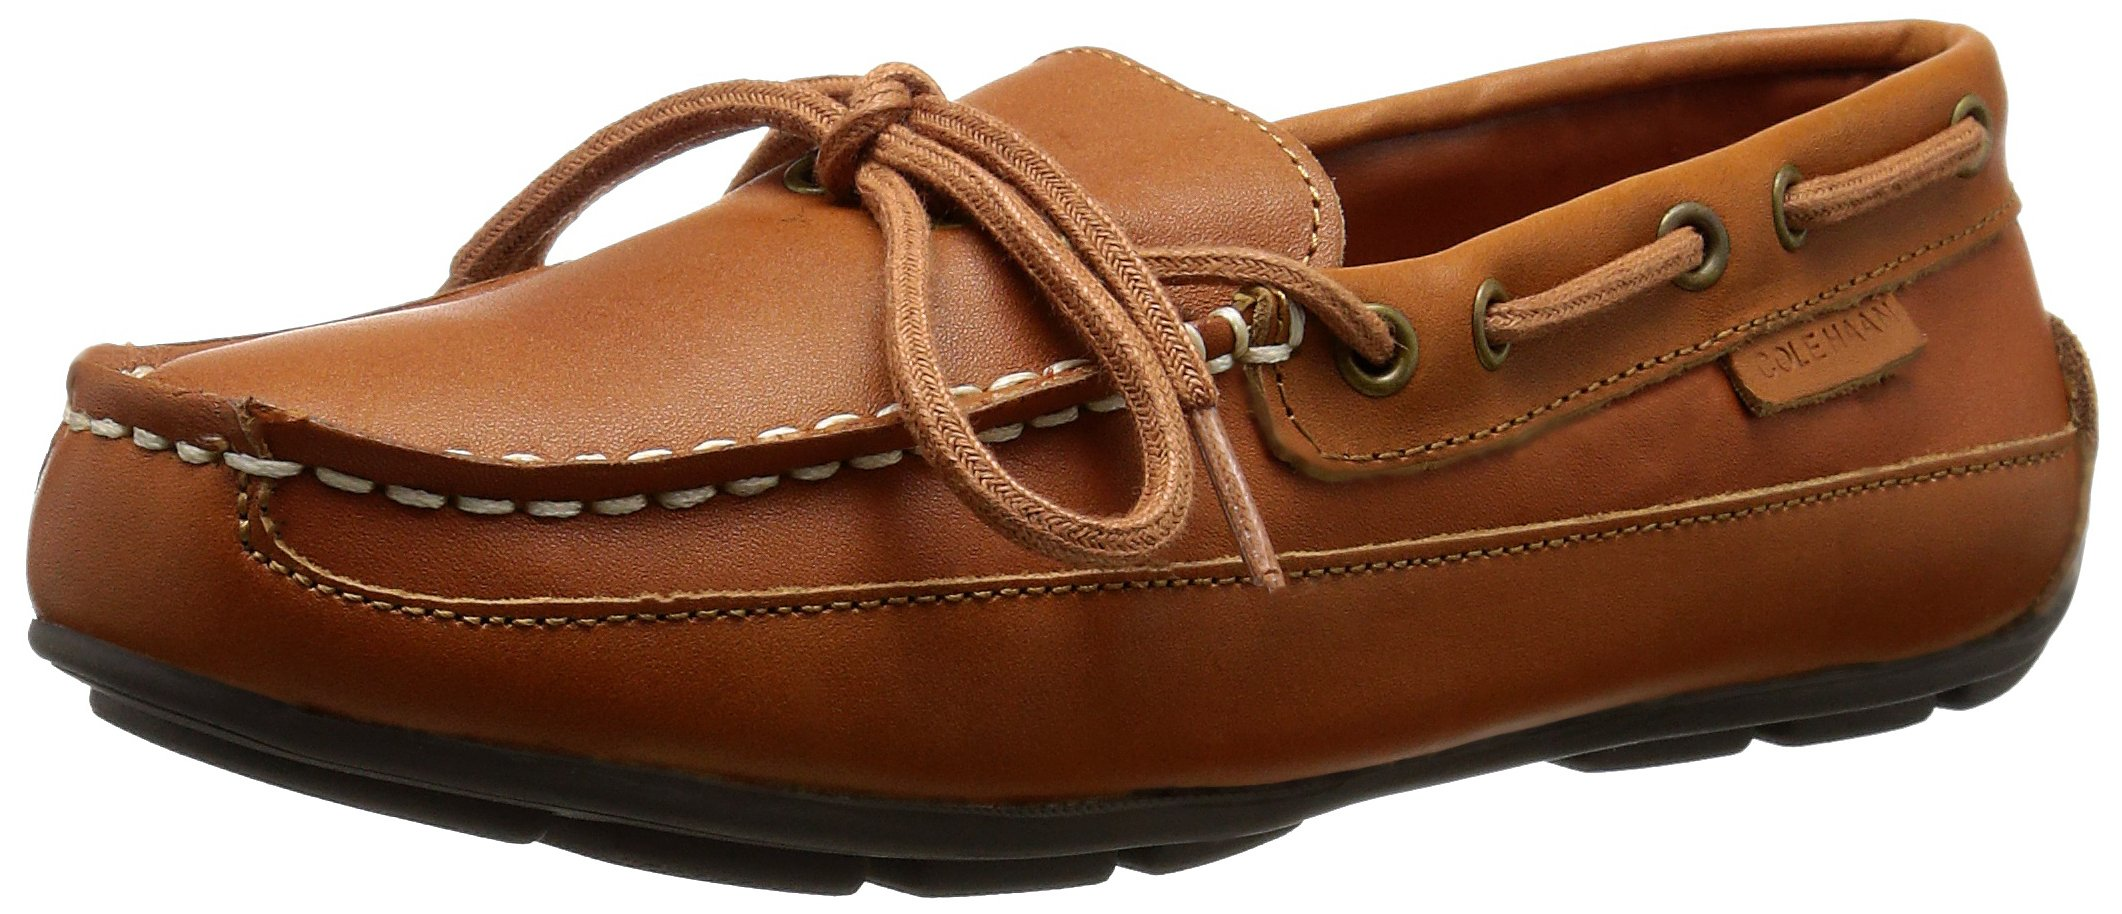 Cole Haan Grant Driver BUR LEA Moccasin (Toddler/Little Kid/Big Kid), British Tan, 7 M US Big Kid by Cole Haan